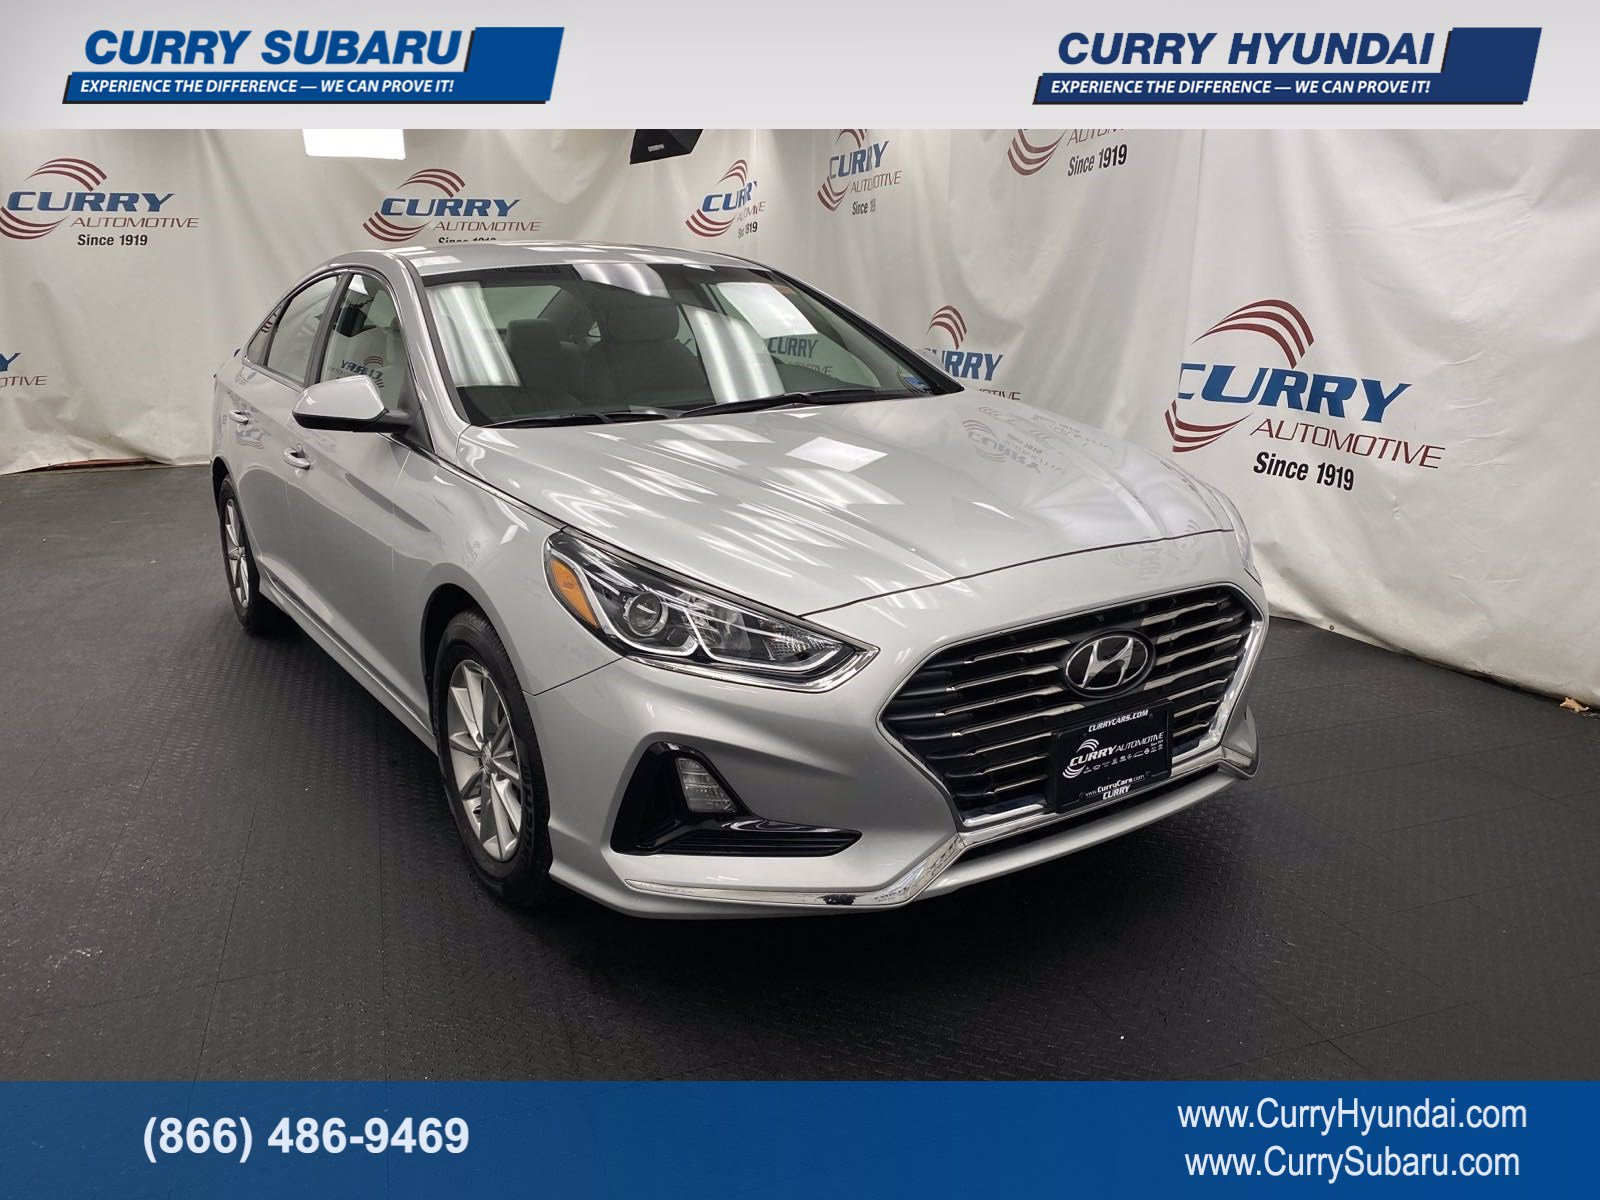 used cars for sale curry hyundai cortlandt manor ny curry hyundai cortlandt manor ny